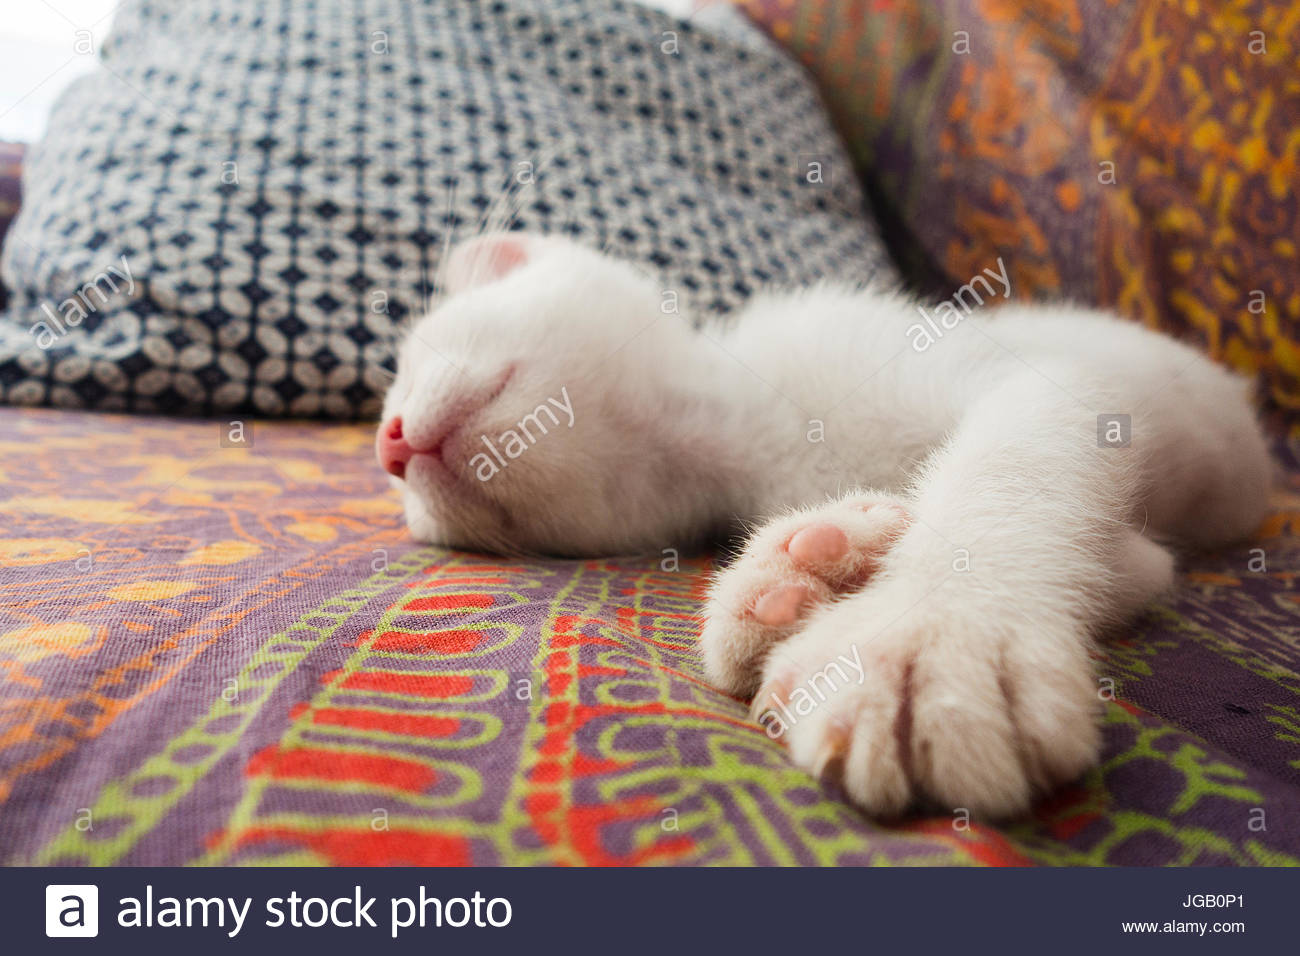 cat on the sofa - Stock Image